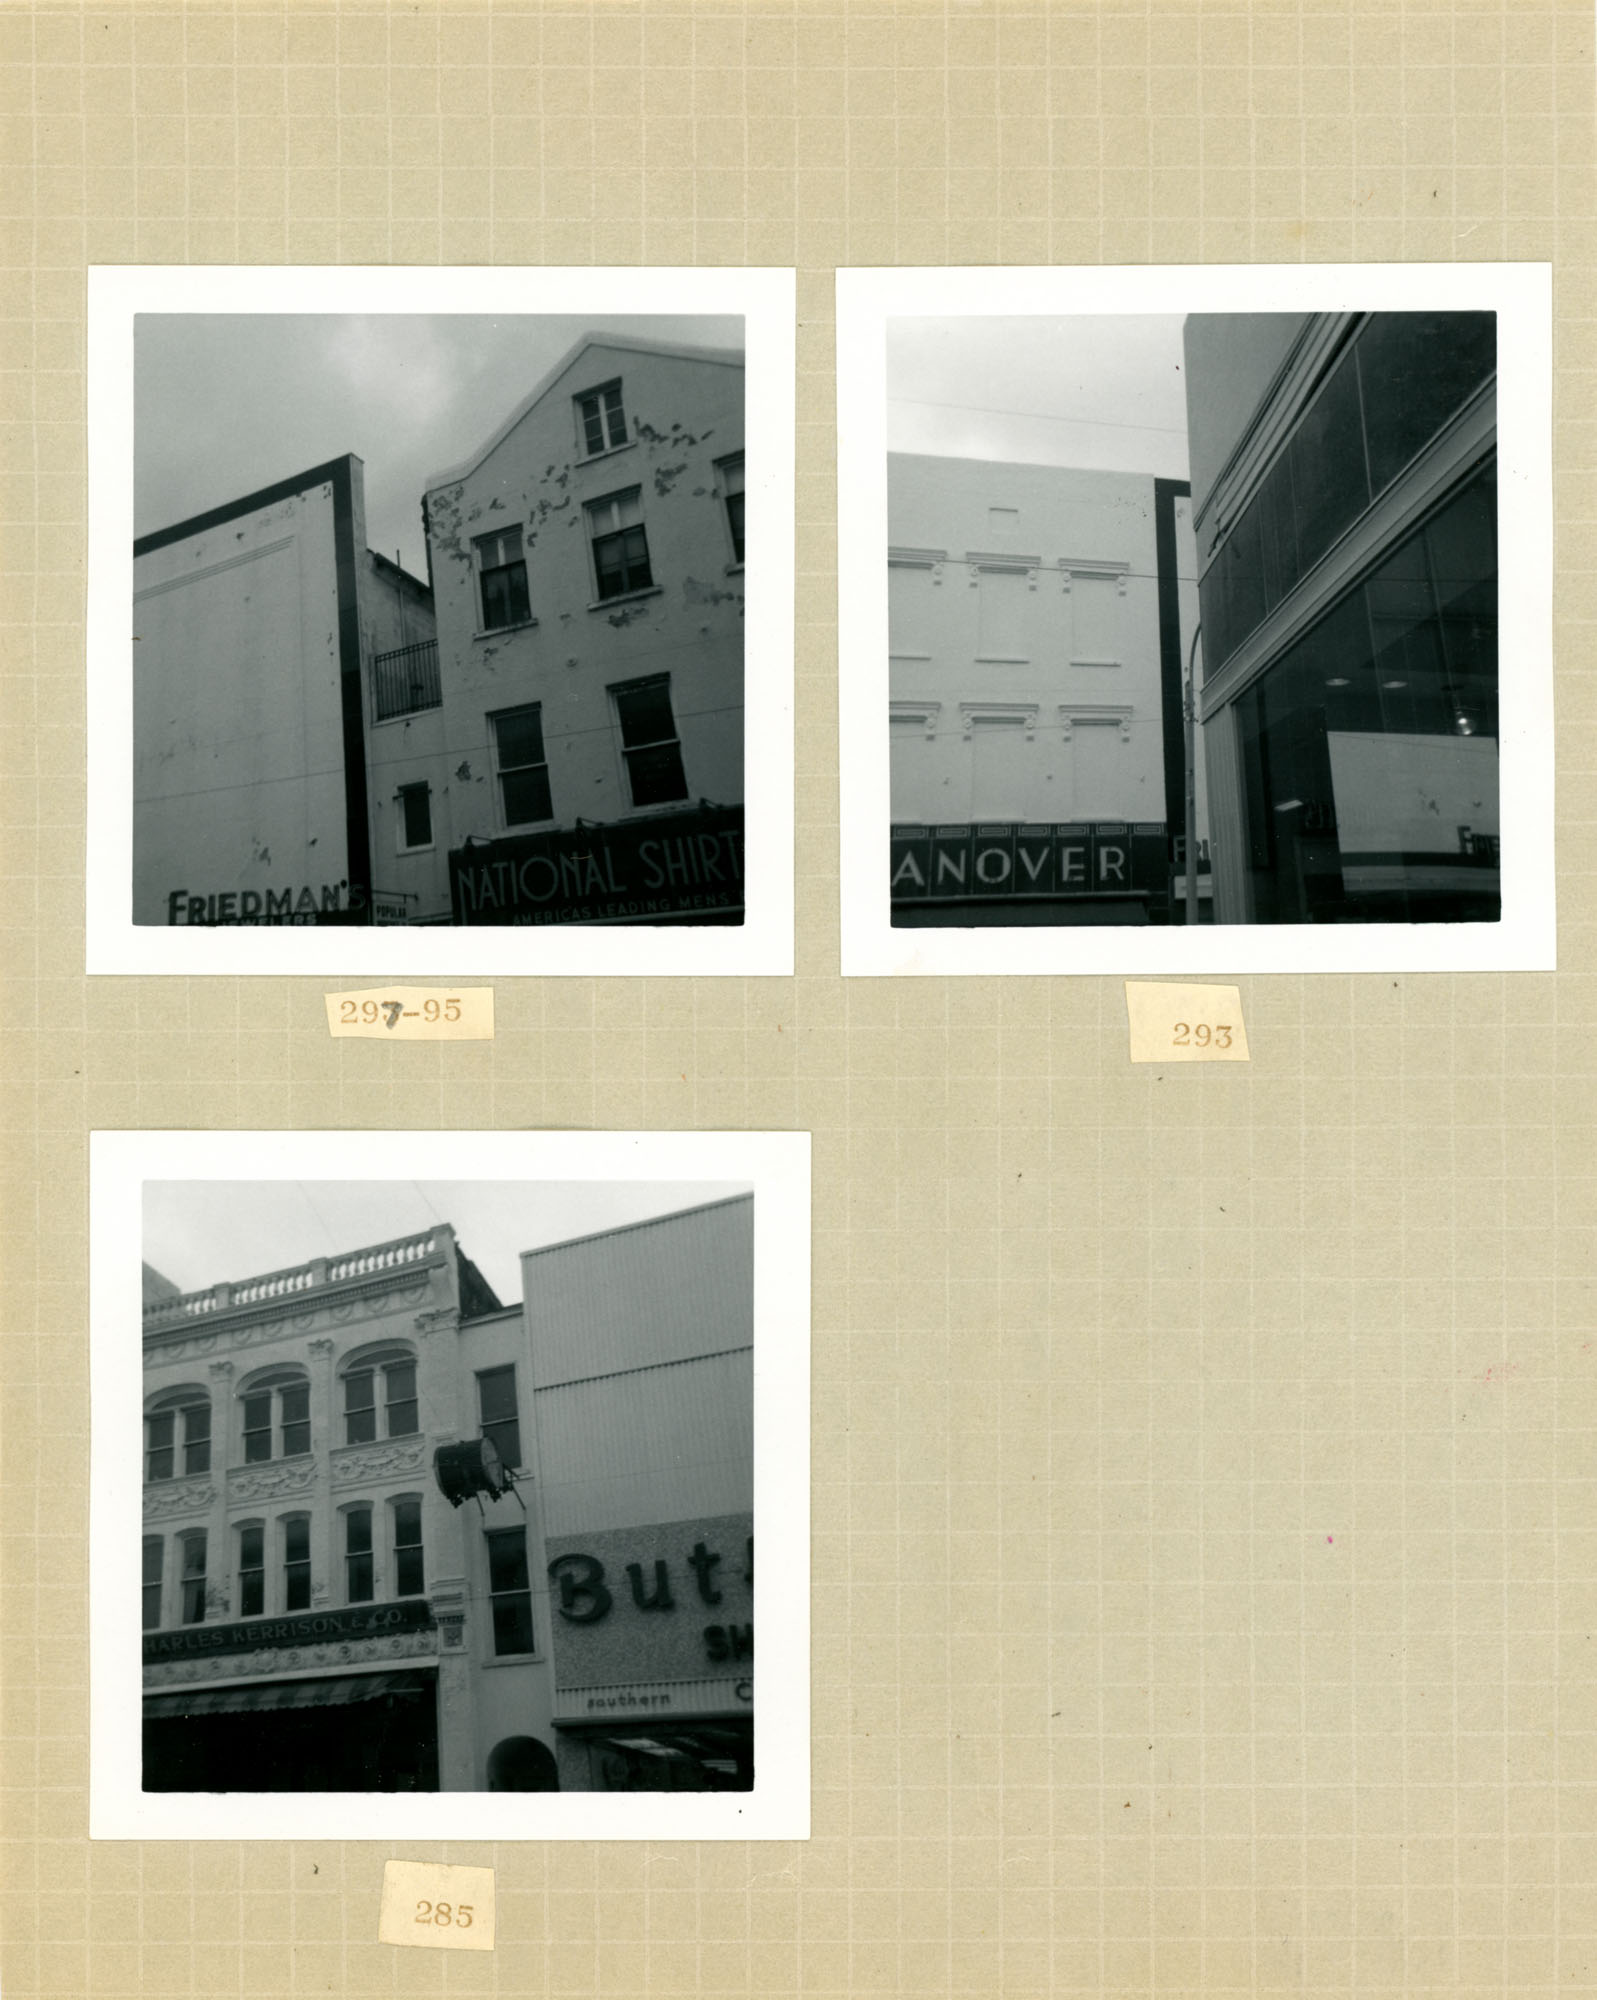 King Street Survey Photo Album, Page 8 (front): 285-325 King Street